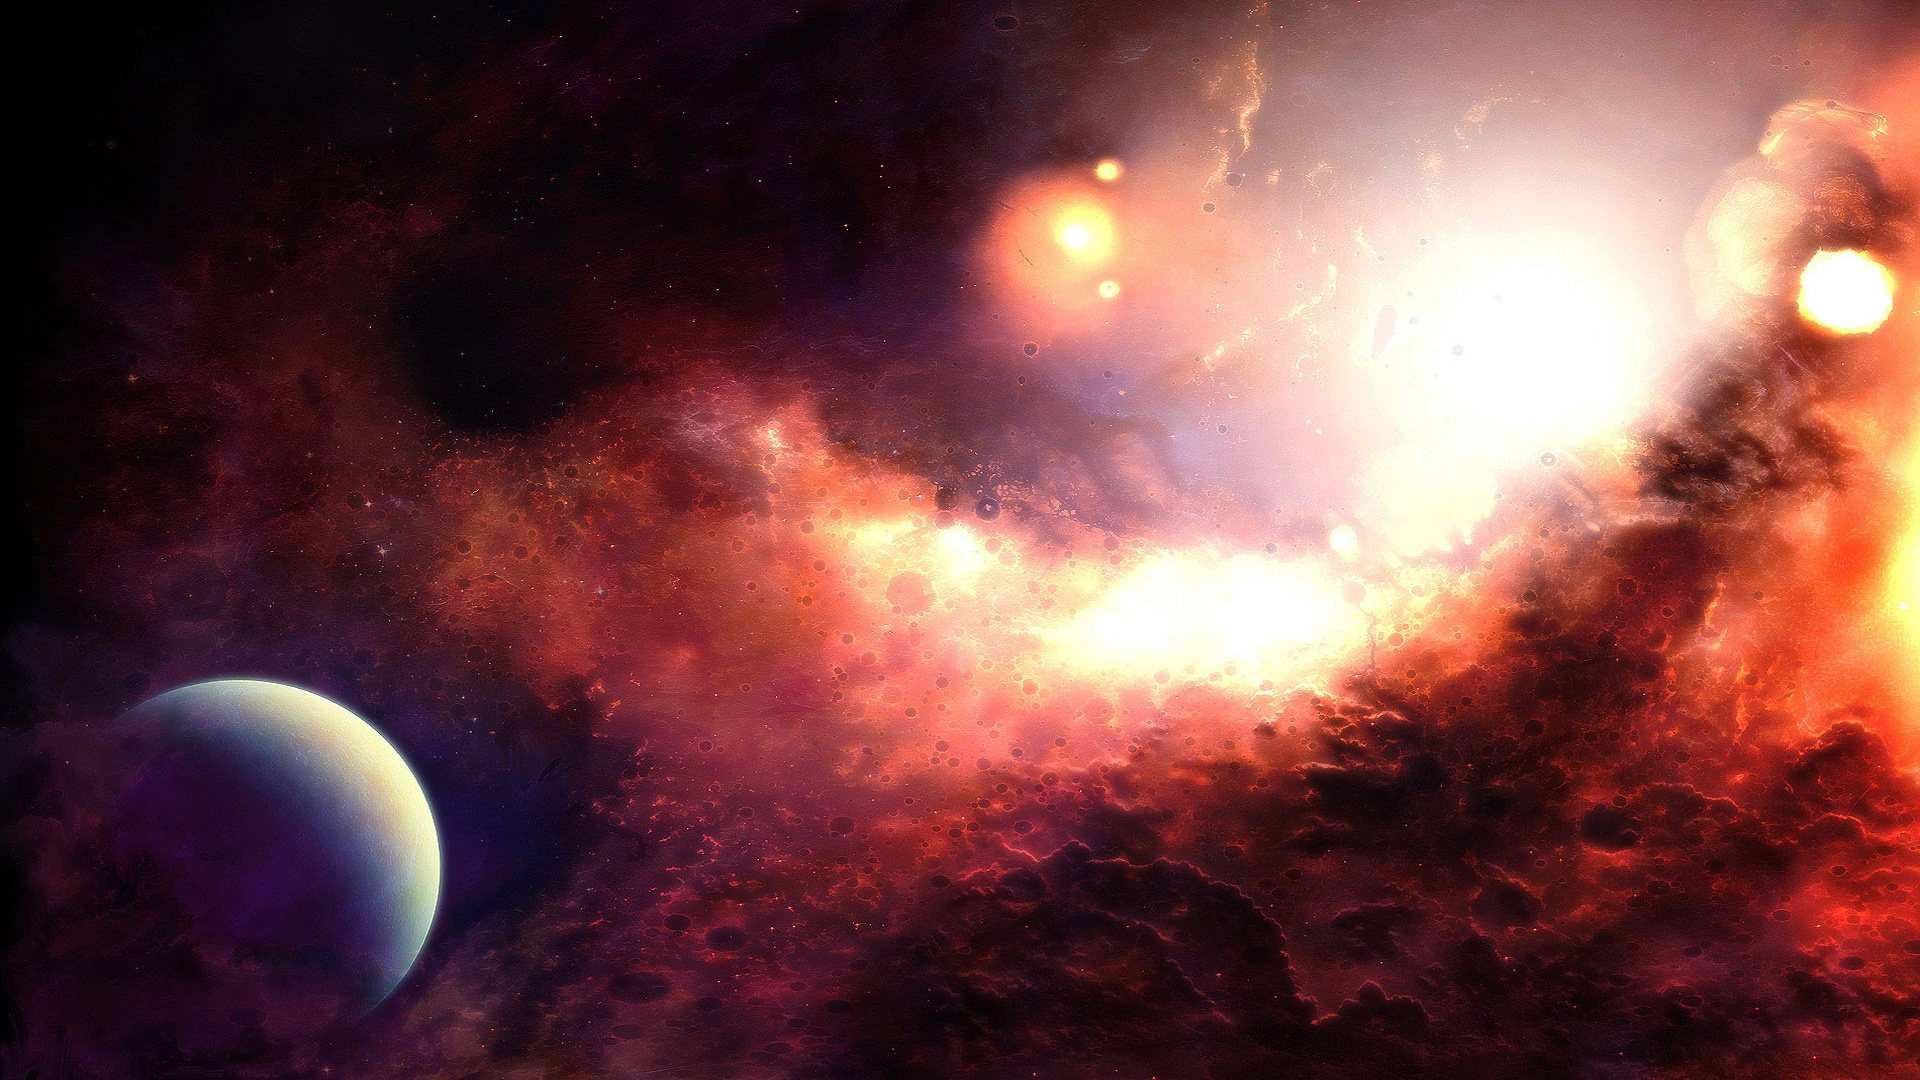 Wallpaper Beautiful Of The Red Space 1920x1200 Hd Picture Image